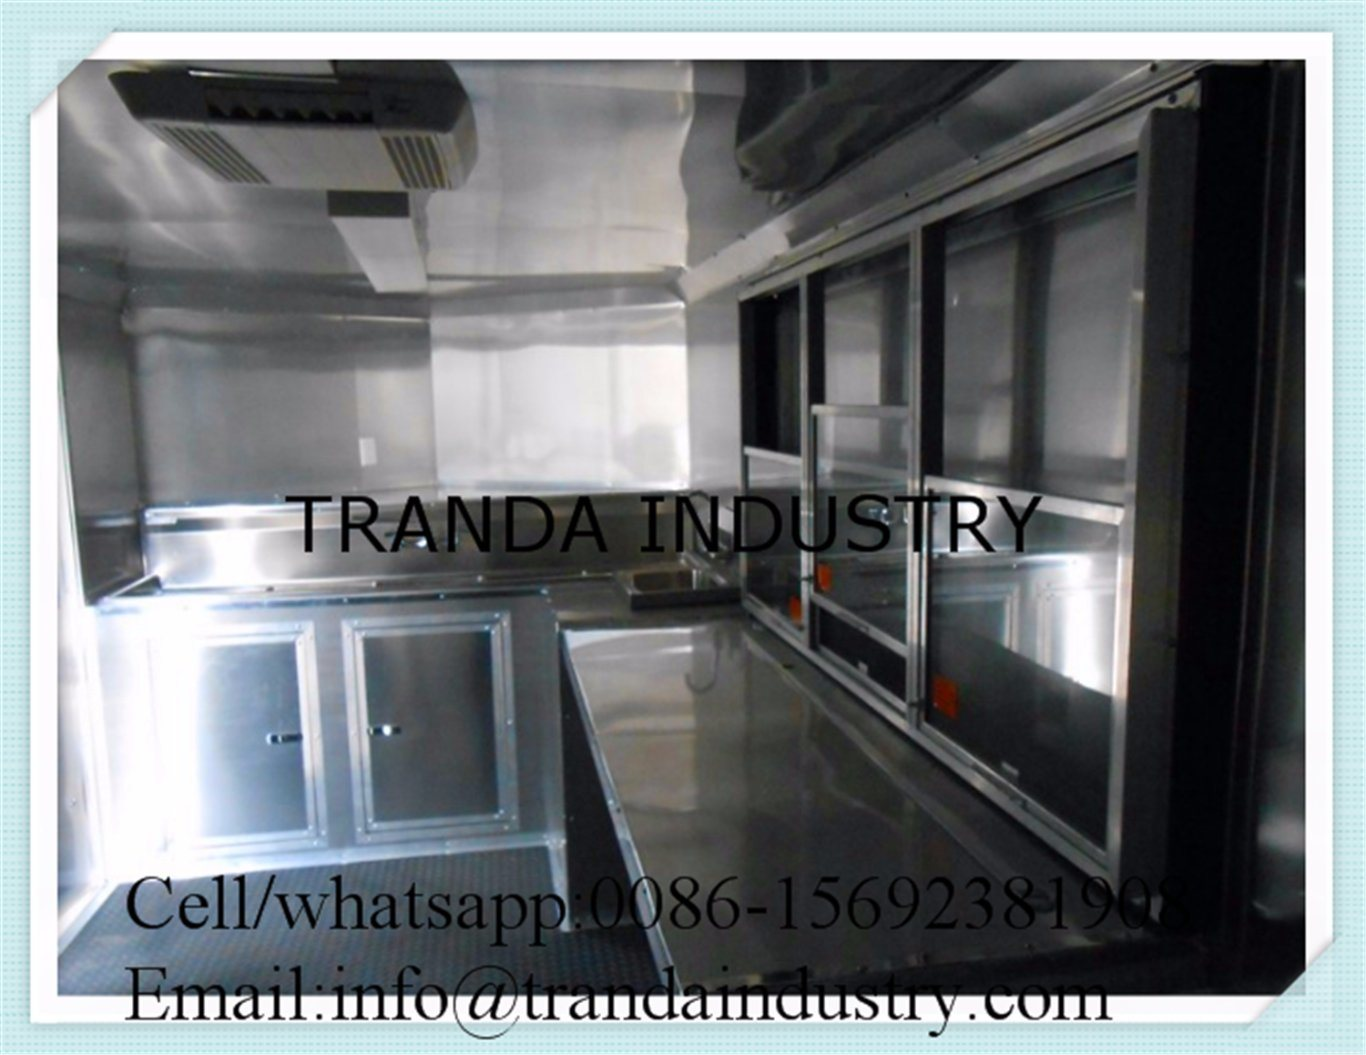 New Mobile Food Trailer Food Cart Trailer